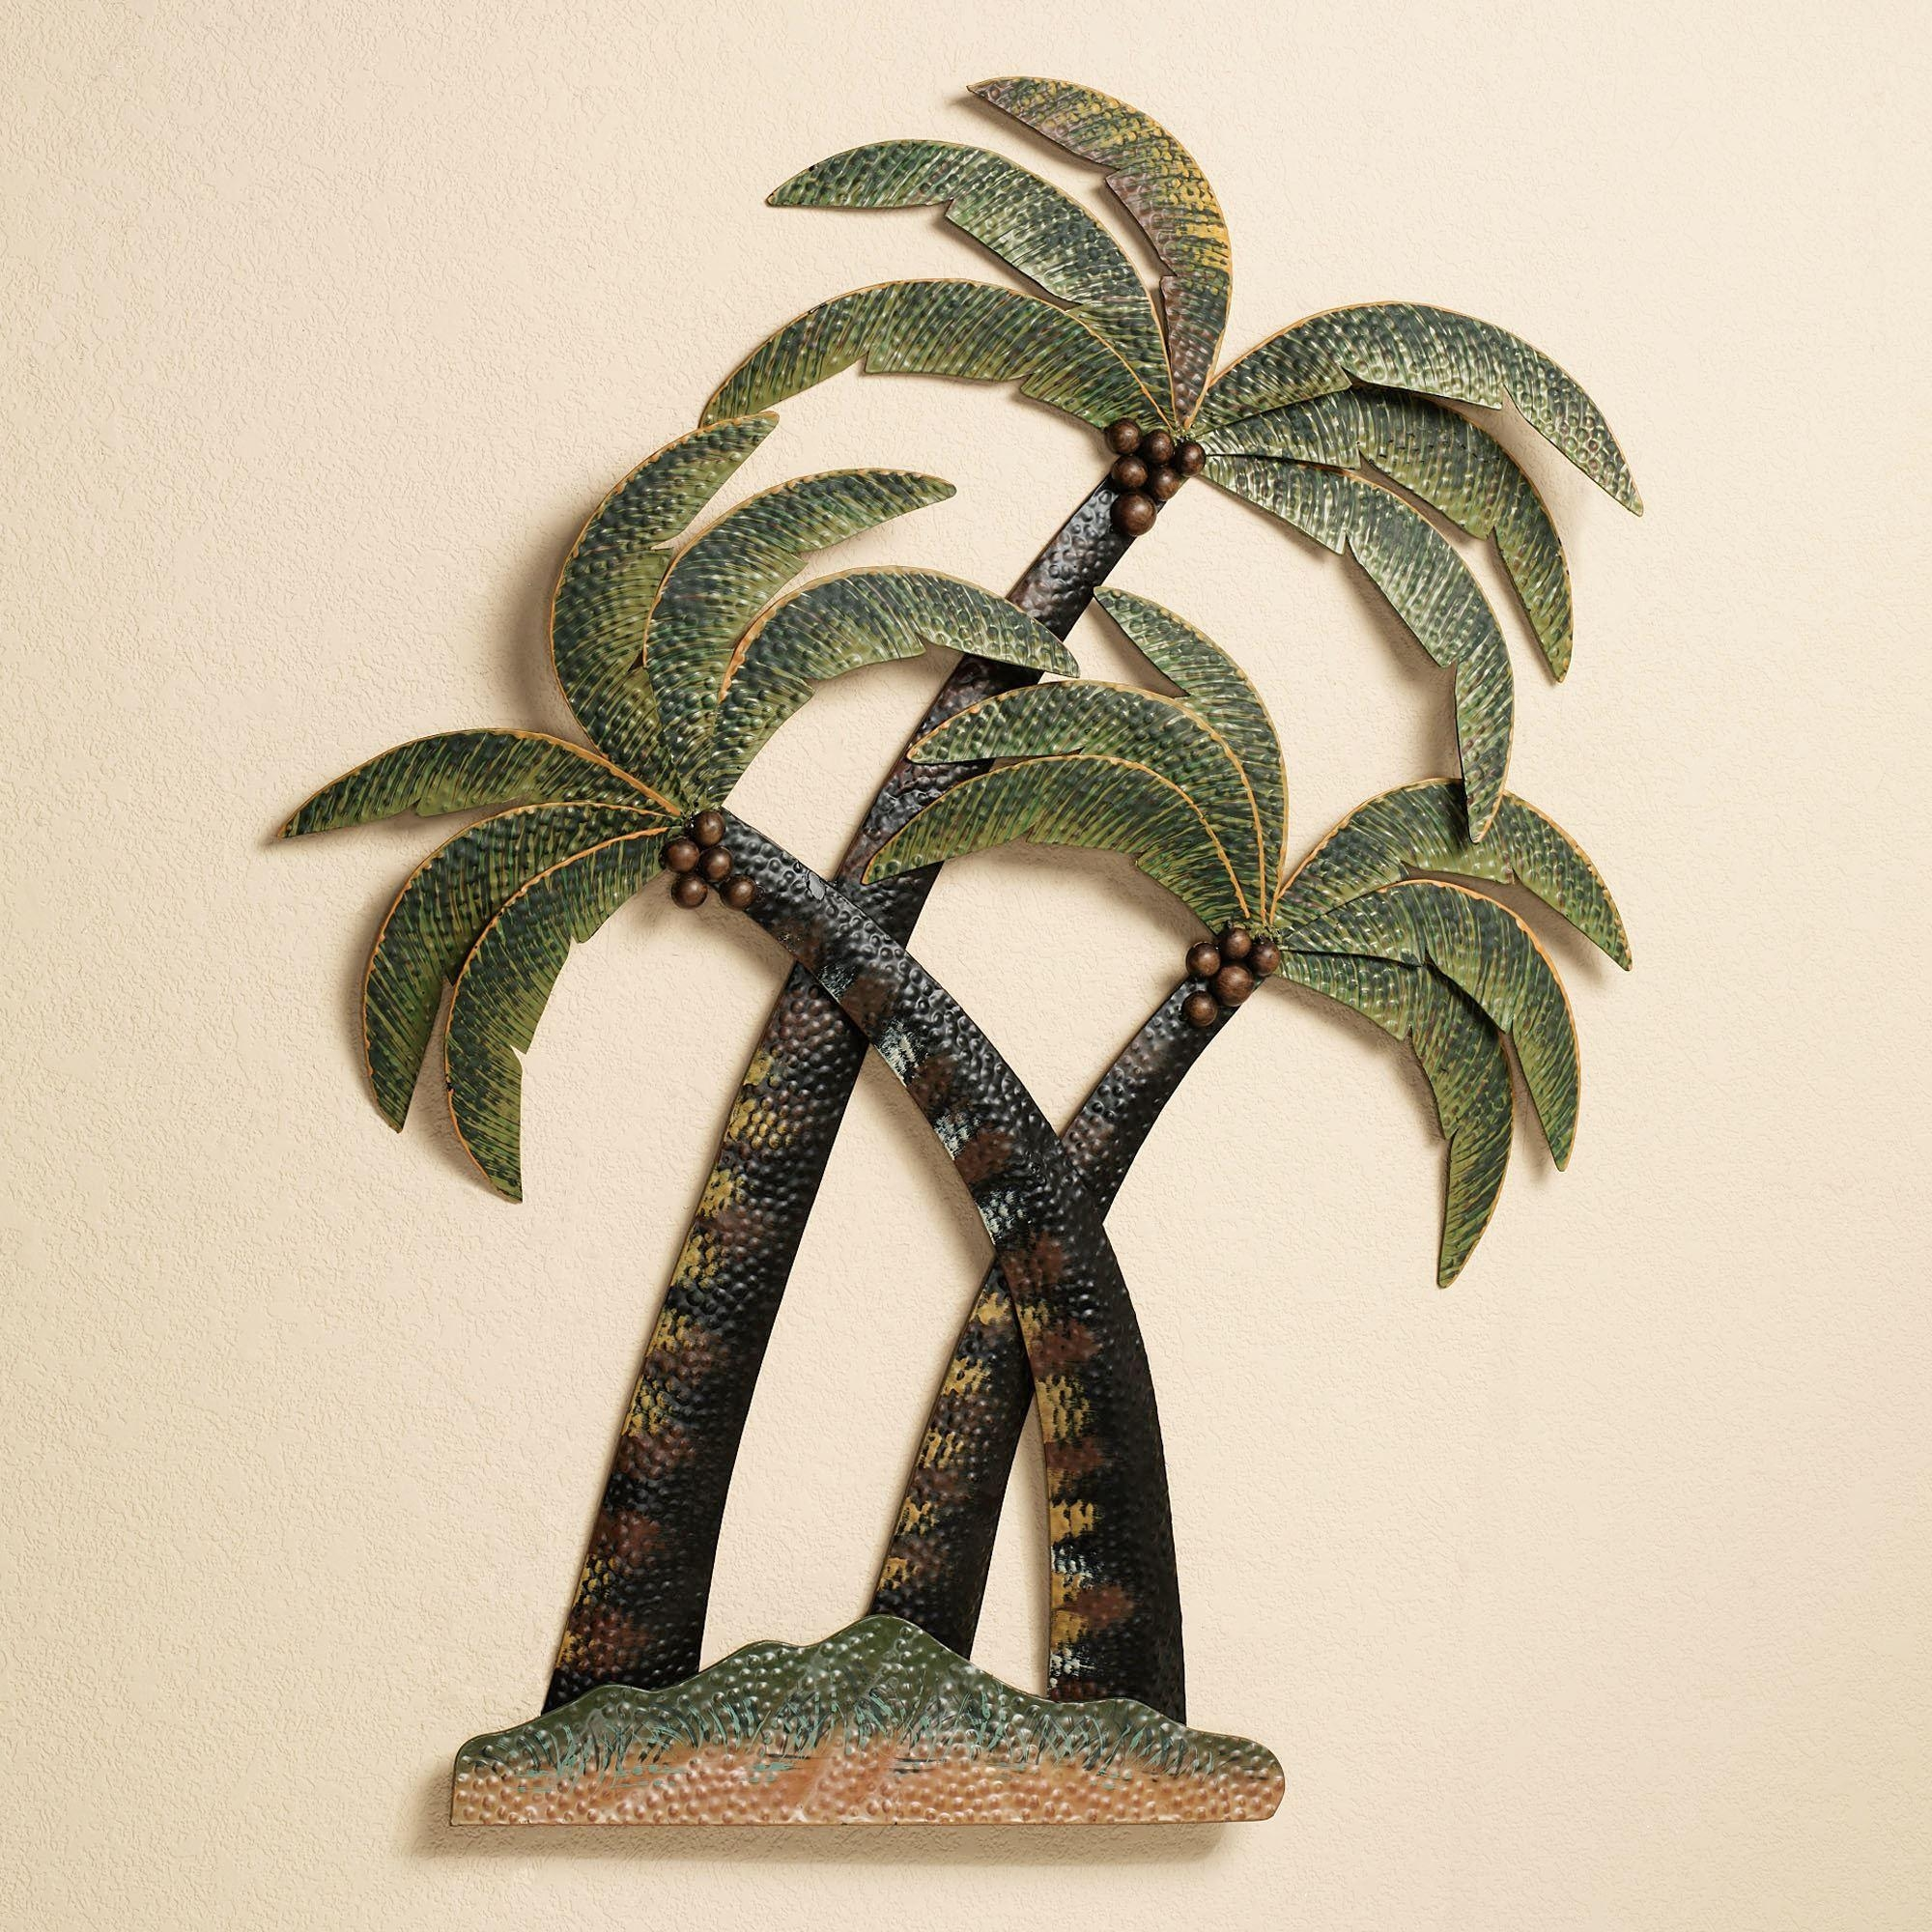 Coco Palm Tree Metal Wall Sculpture Regarding Palm Tree Metal Art (View 2 of 20)